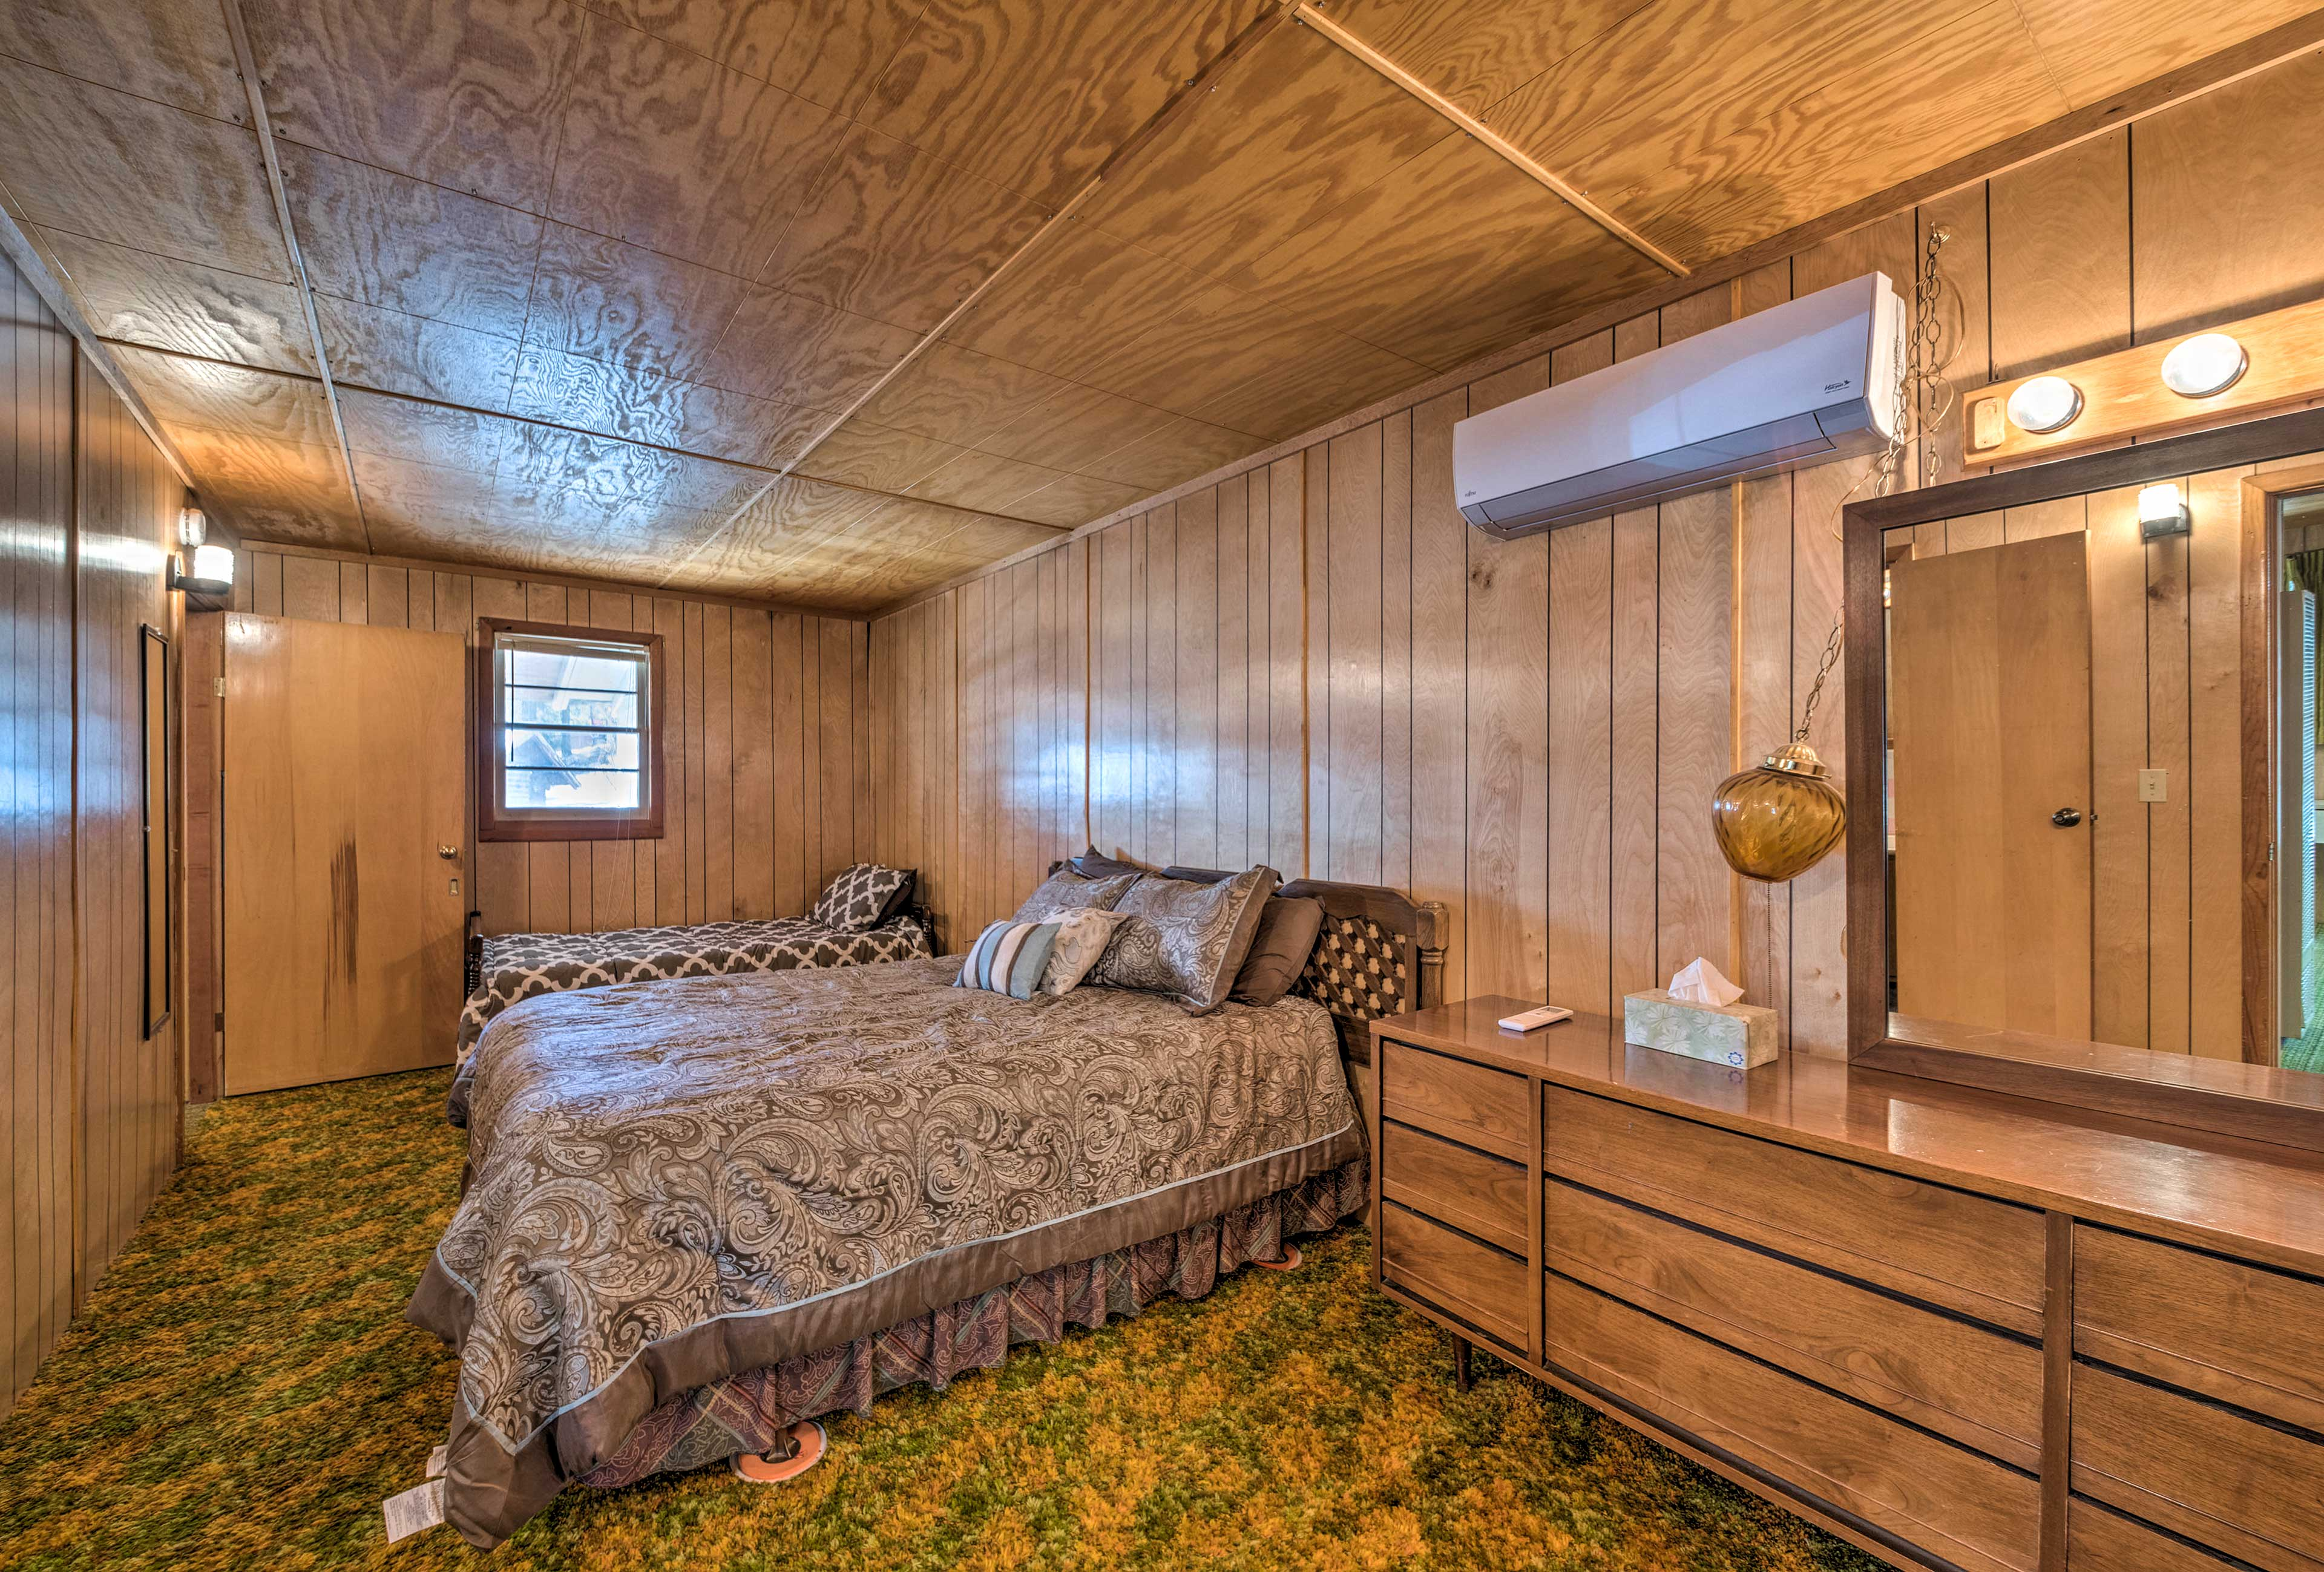 Bedroom 2 | Queen Bed, Twin Bed with Twin Trundle Bed